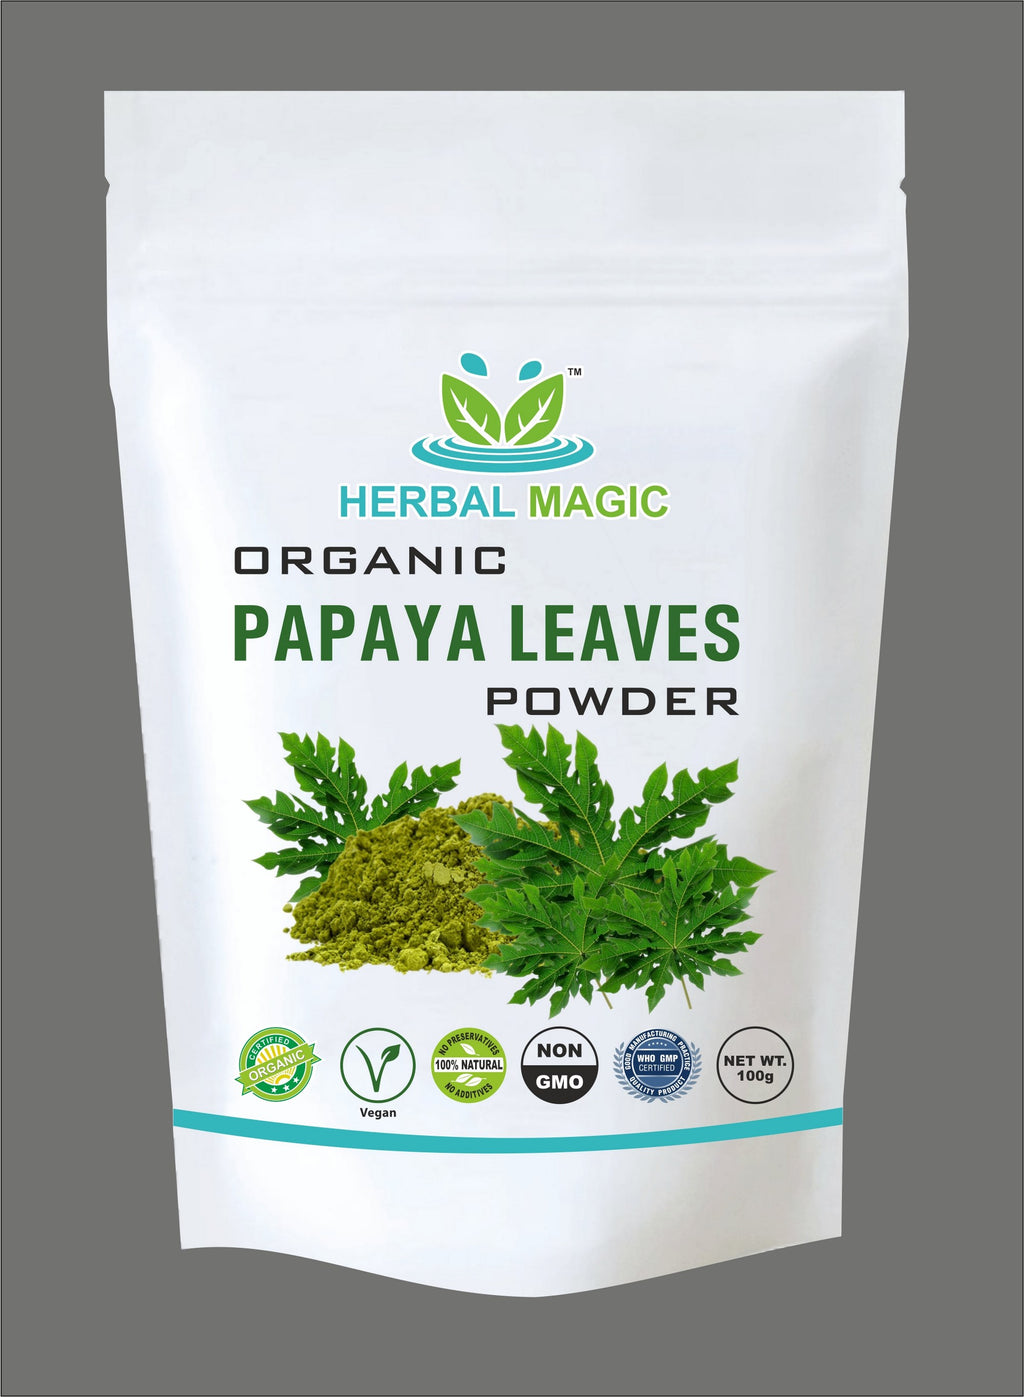 Please Select one - Certified Organic Papaya Leaf Powder (100g) or Capsule (60) - Vitamin C A Calcium Iron - Whole Plant Used